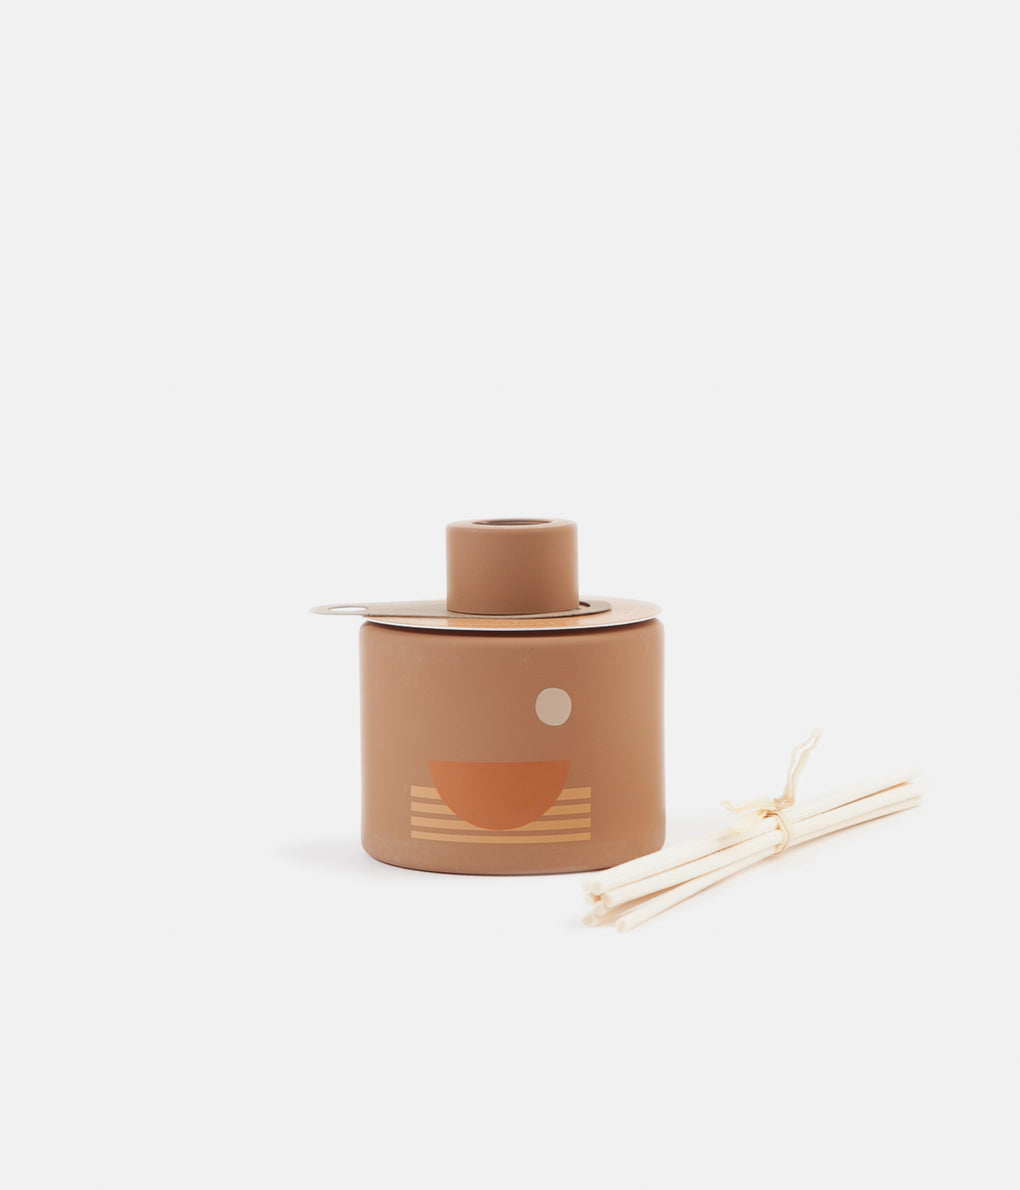 P.F. Candle Co. No. 3 Swell Sunset Reed Diffuser - 3oz